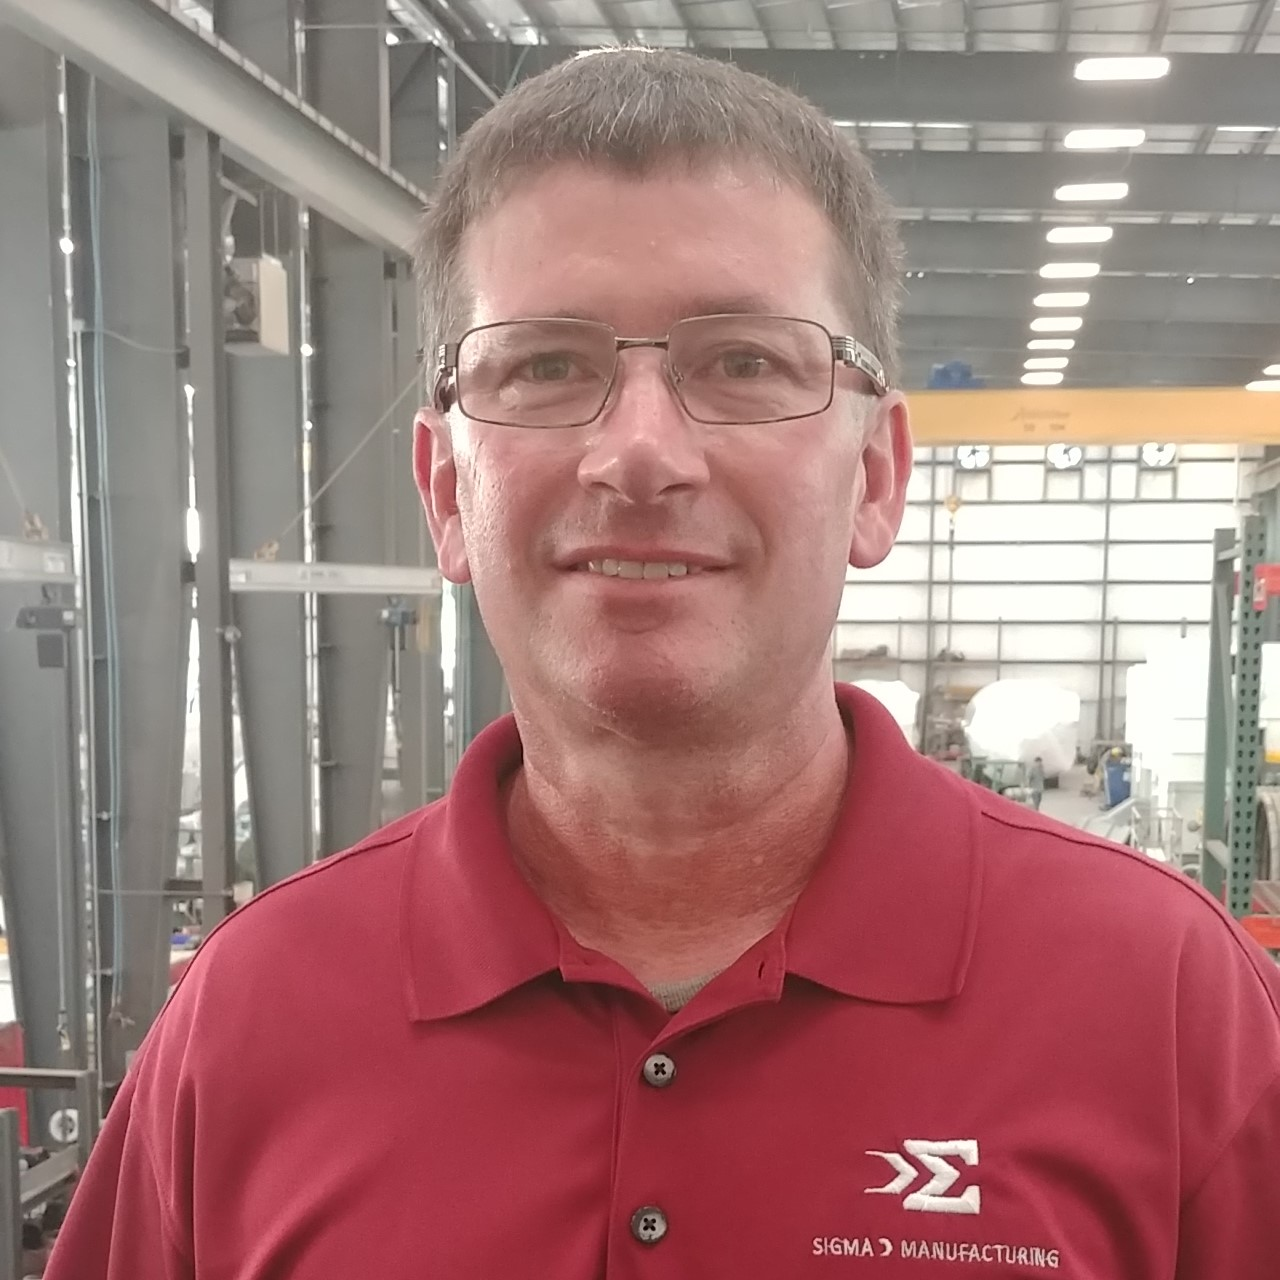 Tony Driskill, Director, General Manager.  Tony has over 30 years experience in manufacturing and metal fabrication with a work history that includes construction, railroad, industrial equipment, boilers, pressure vessels and process piping. Tony has been with Sigma Manufacturing LLC since 2011.   LinkedIn Profile